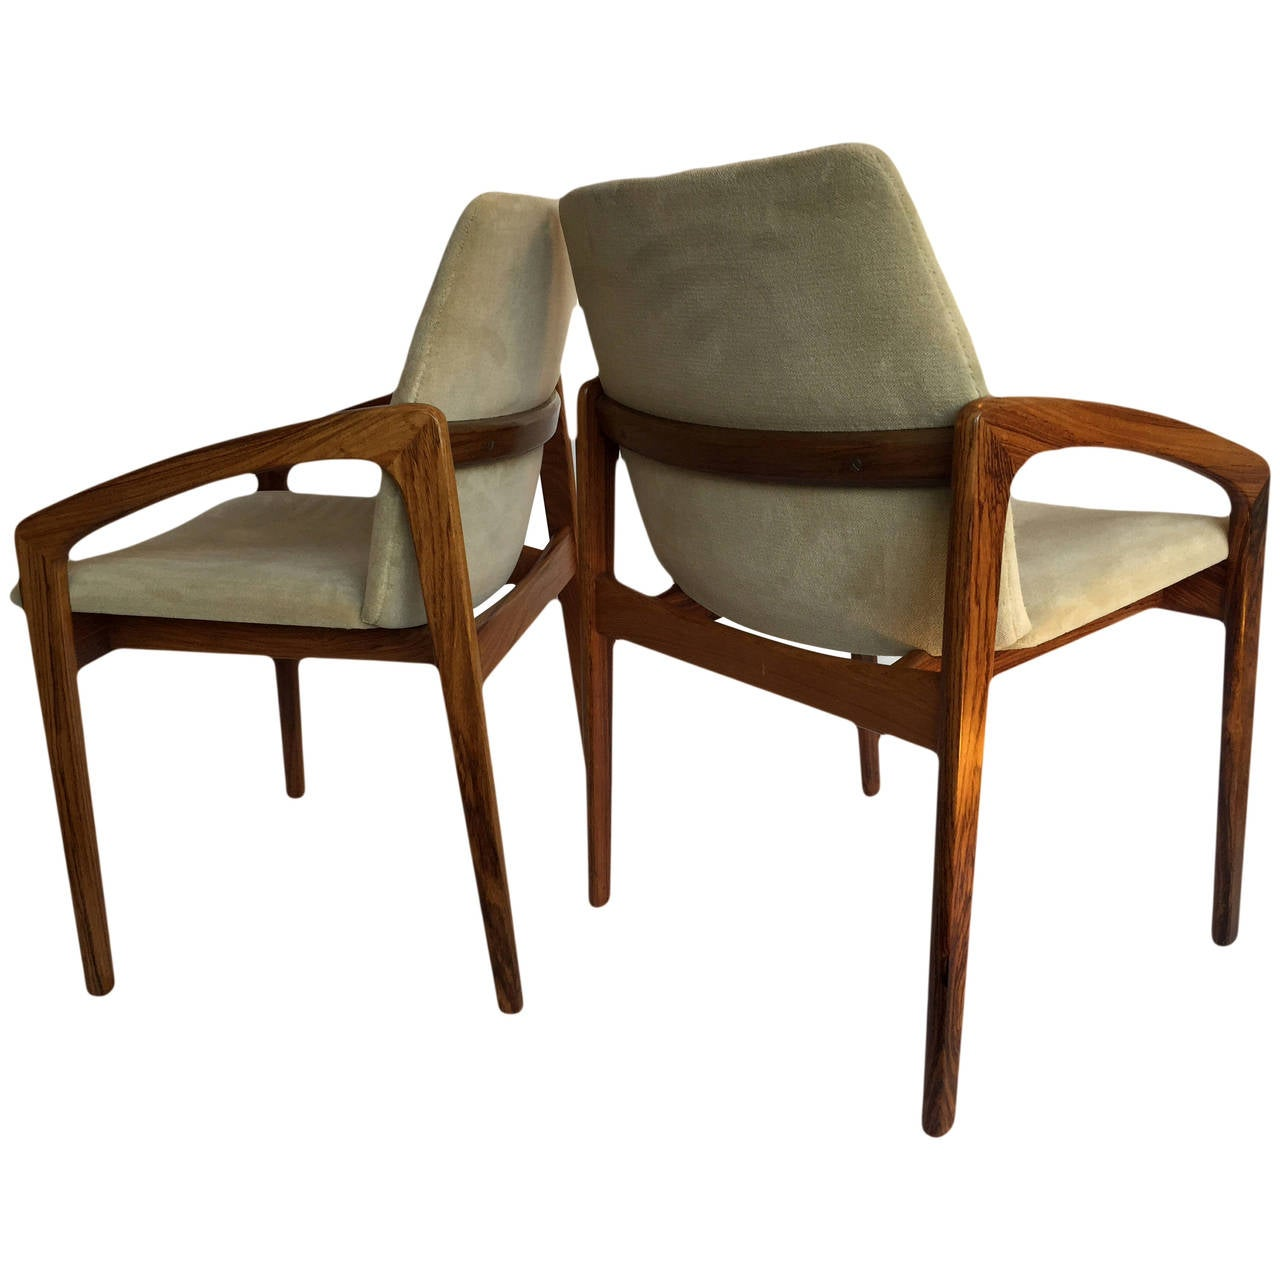 Kai kristiansen rosewood dining chairs set of 4 at 1stdibs - Kai kristiansen chairs ...